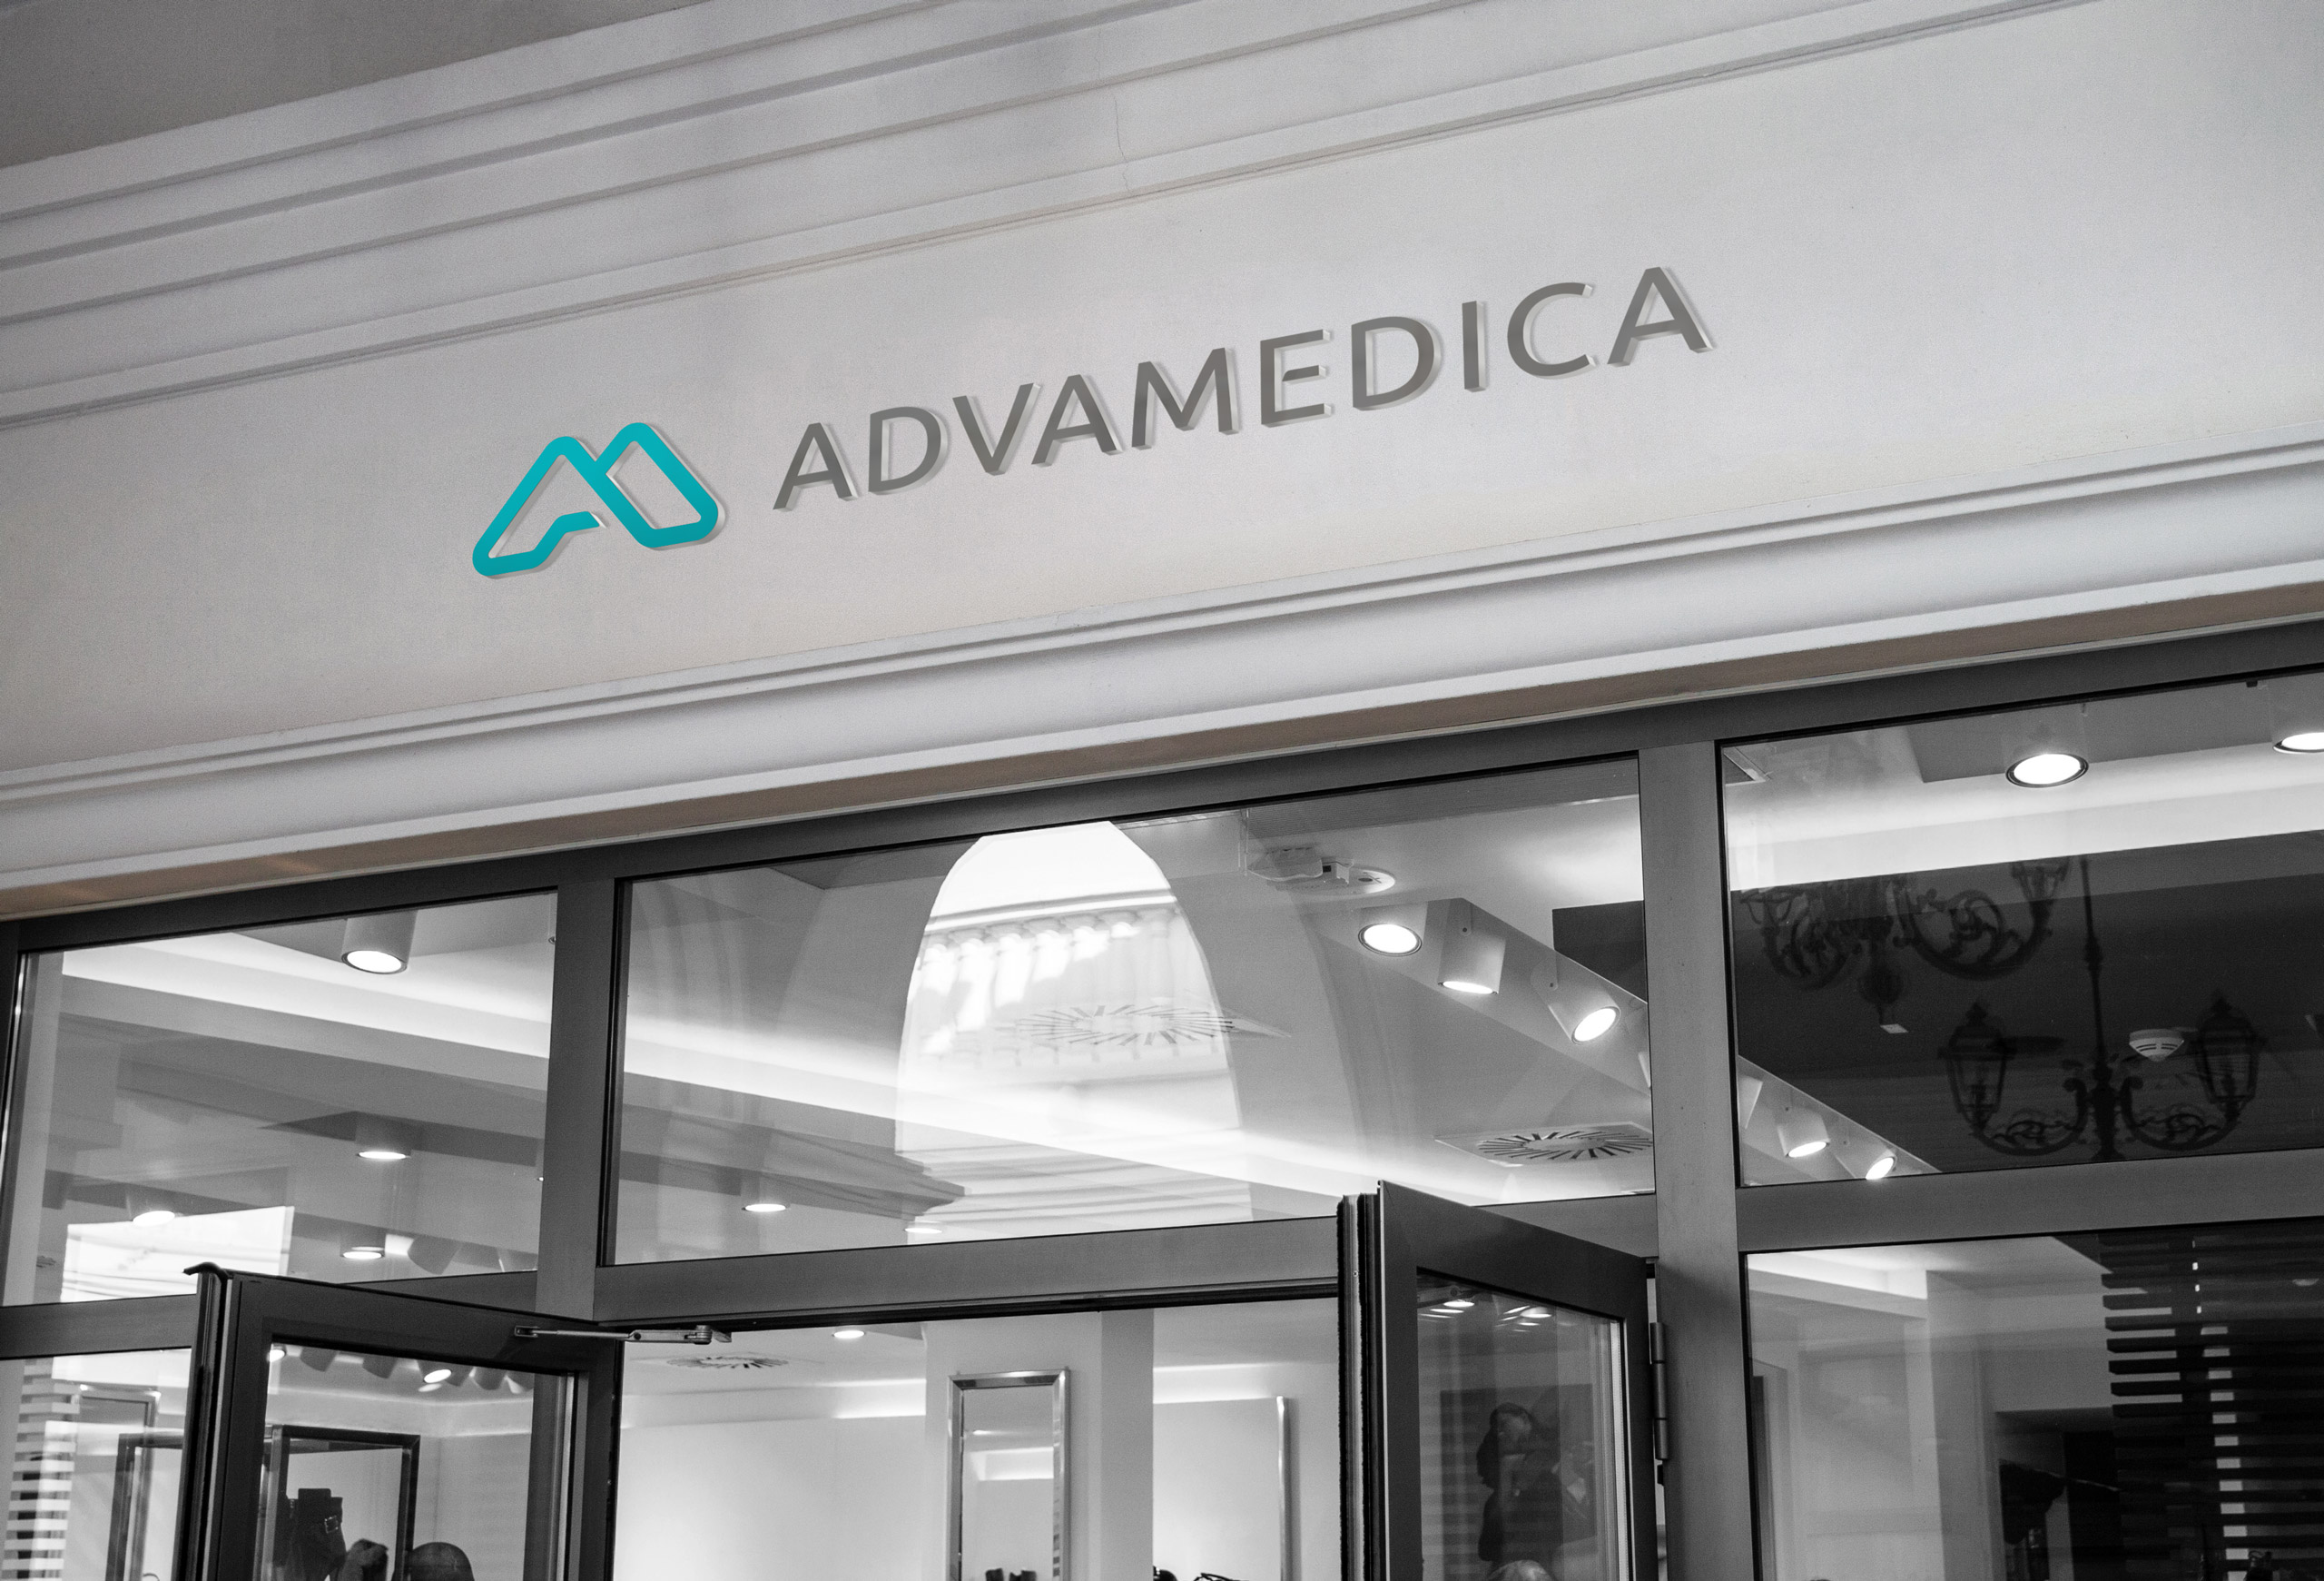 Store signage design for Advamedica